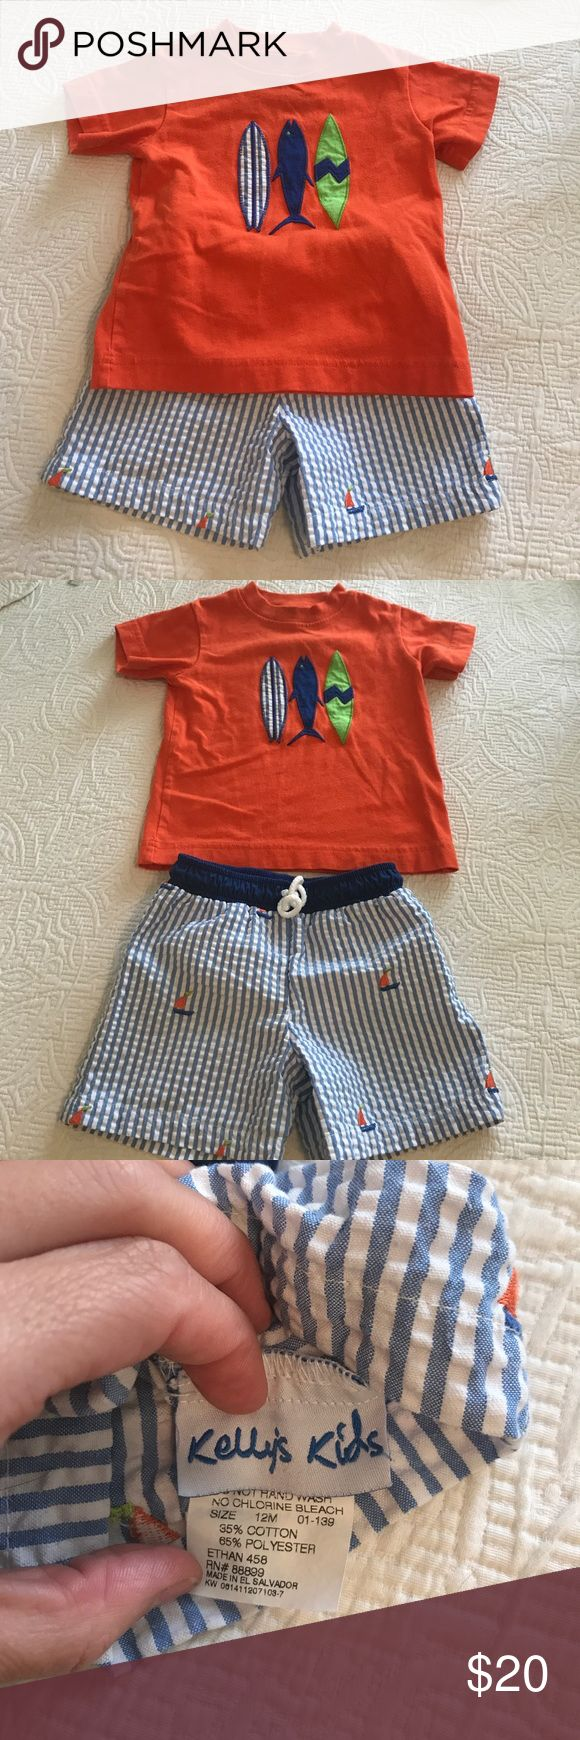 Kelly's Kids bathing suit and tshirt Adorable Kelly's Kids boy bathing suit bottom size 12 months and tshirt size 18 month set for sale! Gently used but in great condition. Kelly's Kids Swim Swim Trunks